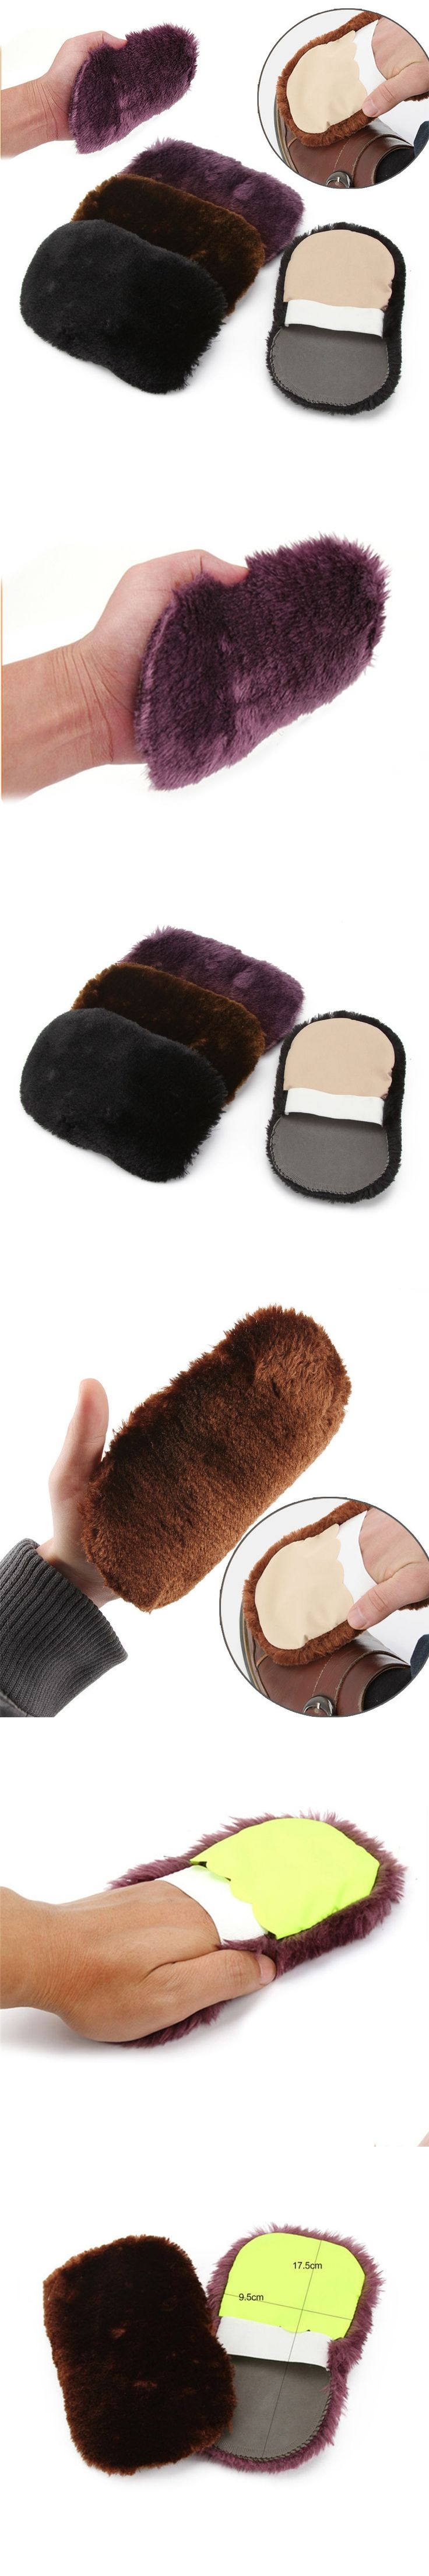 1 Pcs Hot Sale Fashion Soft Wool Plush Suede Shoes Cleaner Shoe Care Brush Shoe Gloves Wipe Shoes Mitt